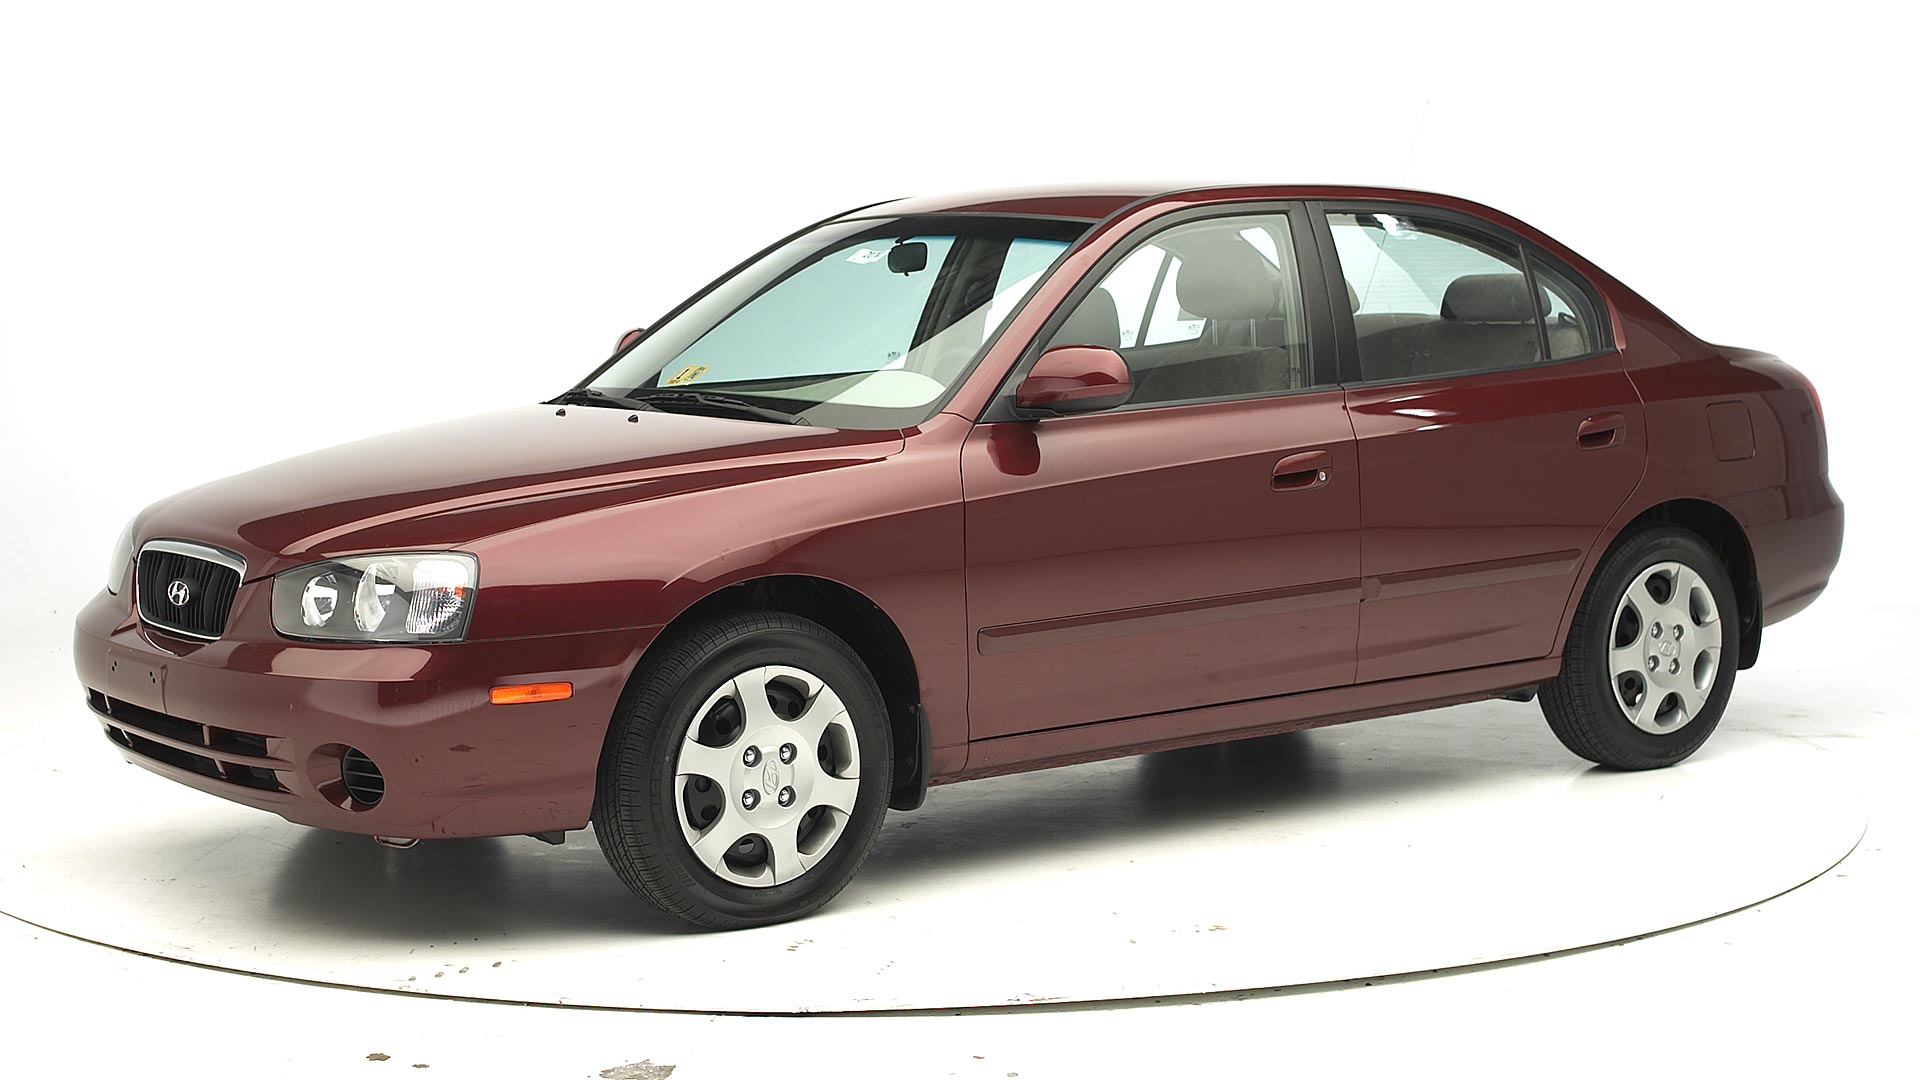 2001 Hyundai Elantra 4-door sedan